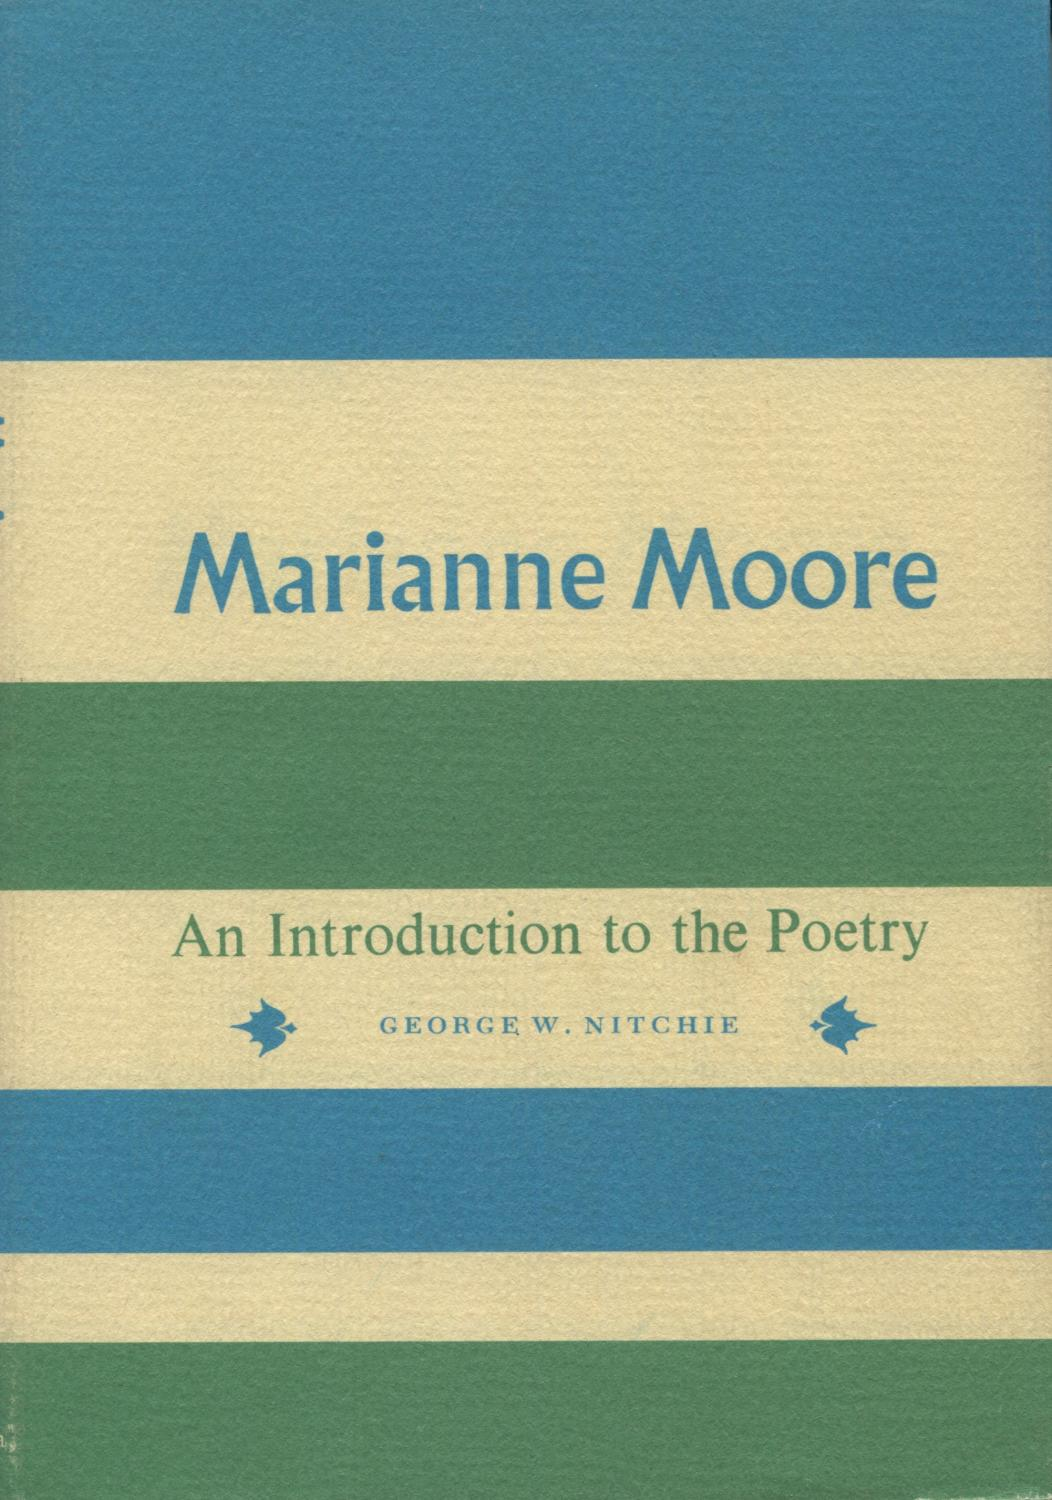 Marianne Moore: An Introduction to the Poetry